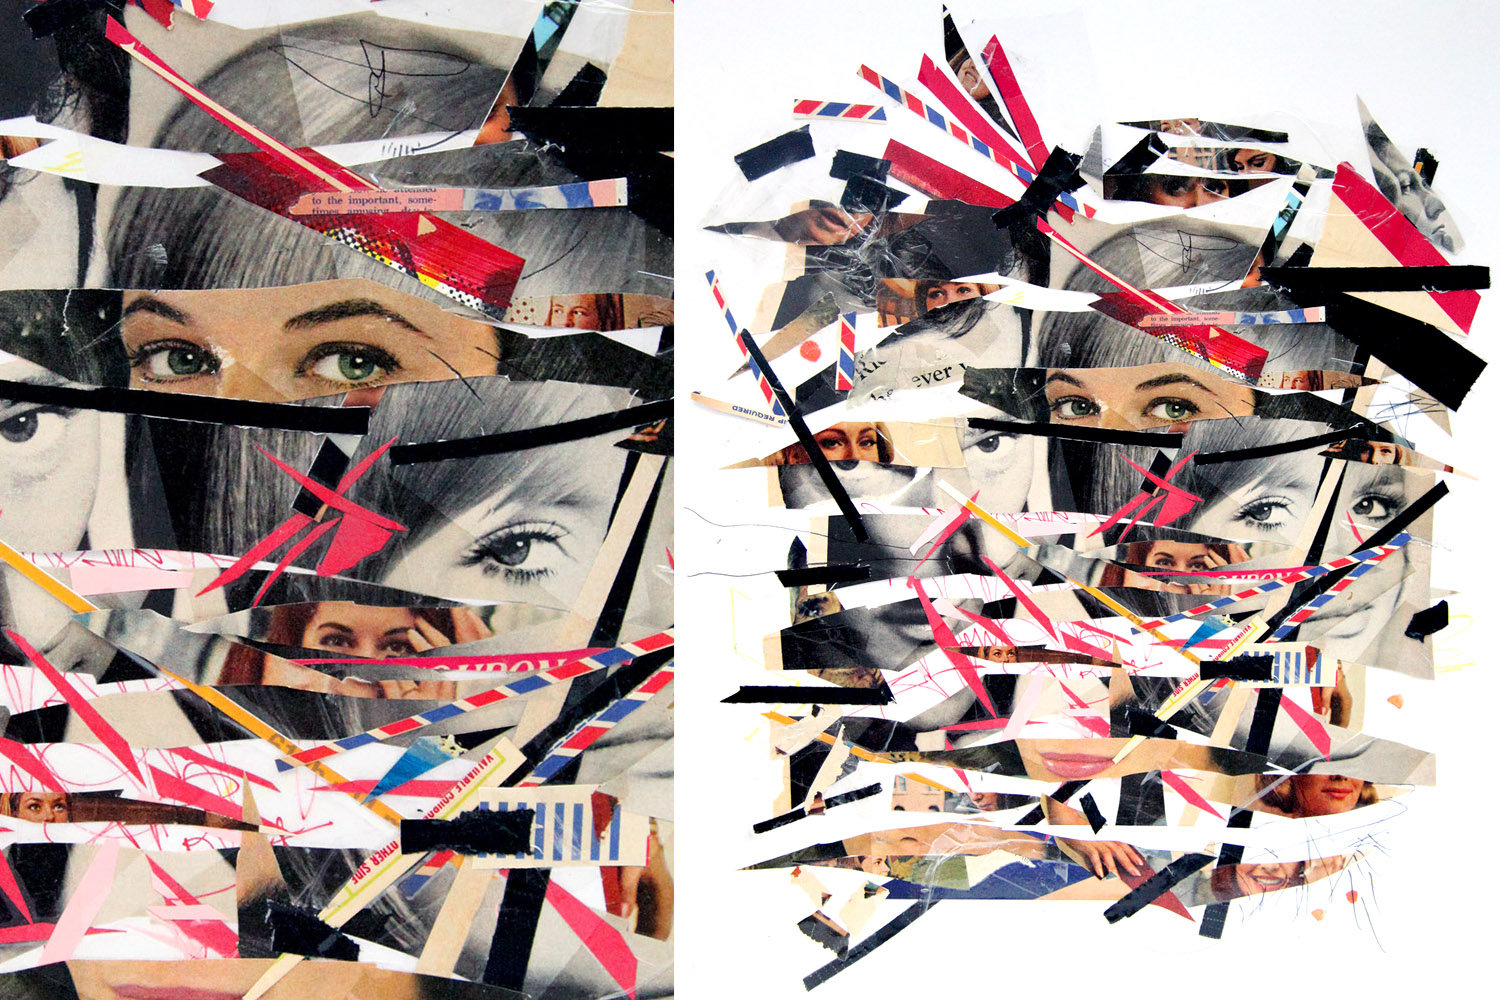 rbubion_collage_07